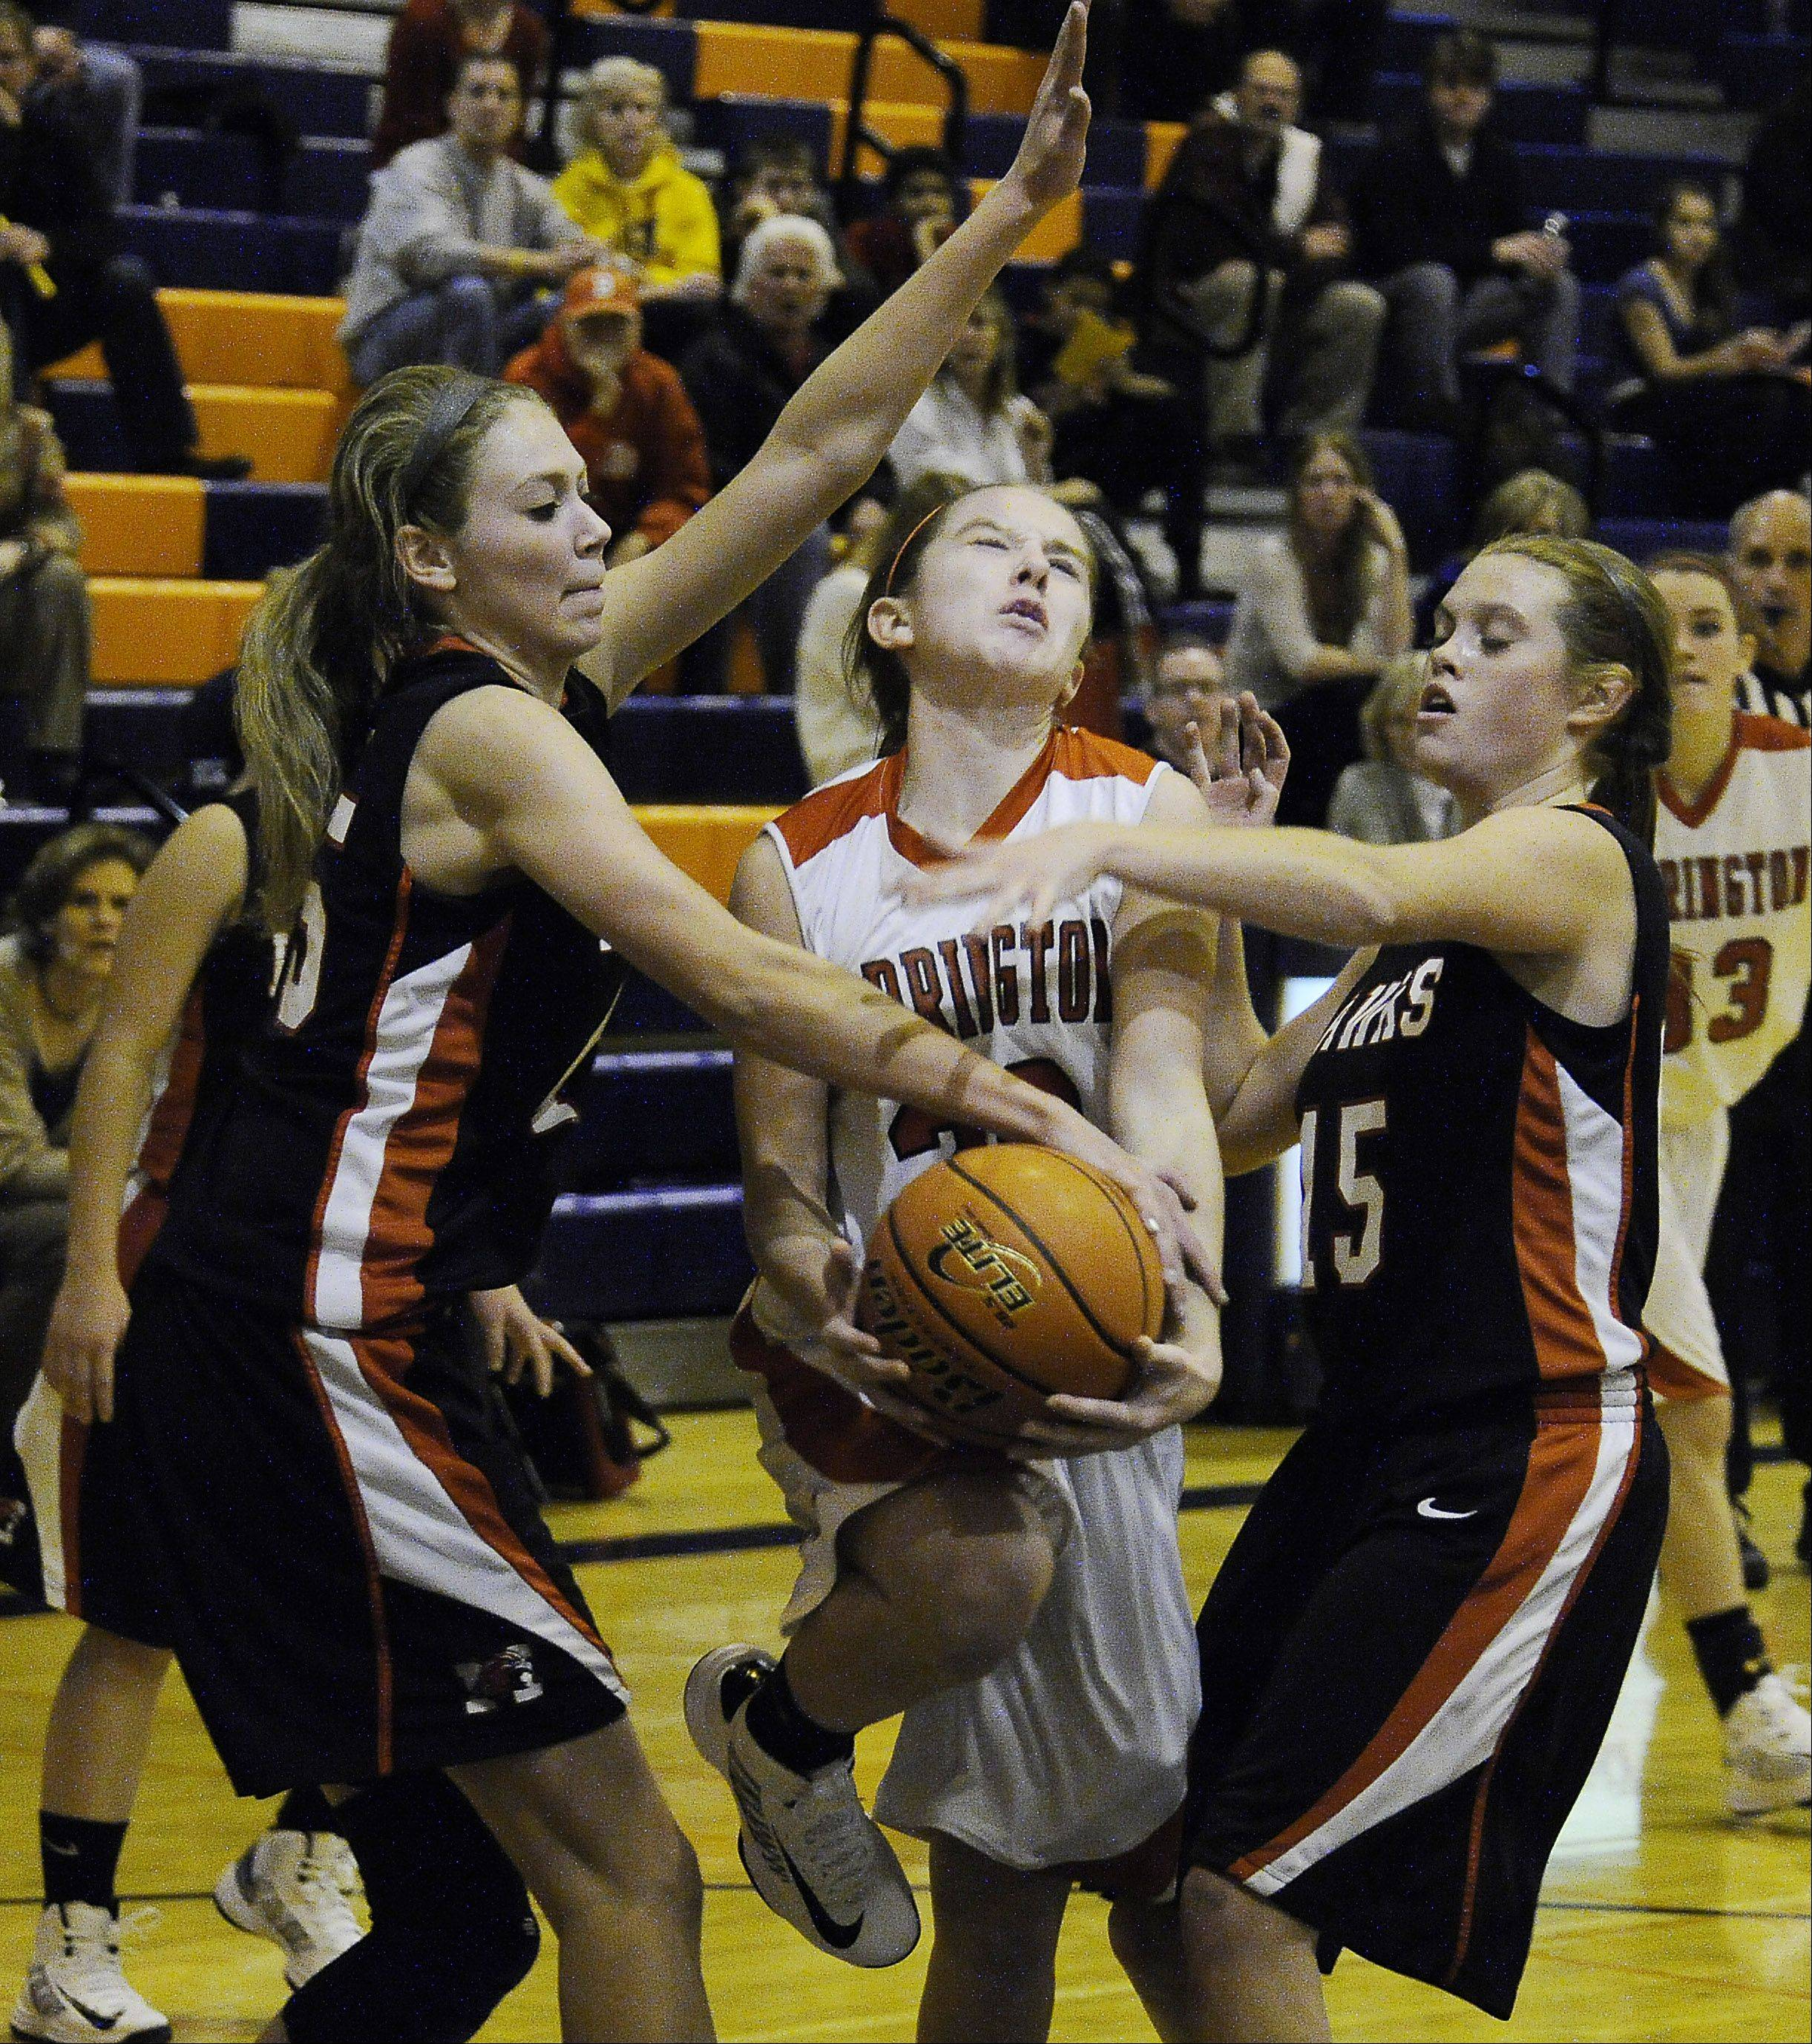 Maine South's Hailey Schoneman fouls Barrington's Kelly Katis as she drives to the basket in the second half of the Bison Classic girls varsity basketball Thanksgiving Tournament at Buffalo Grove High School on Thursday.